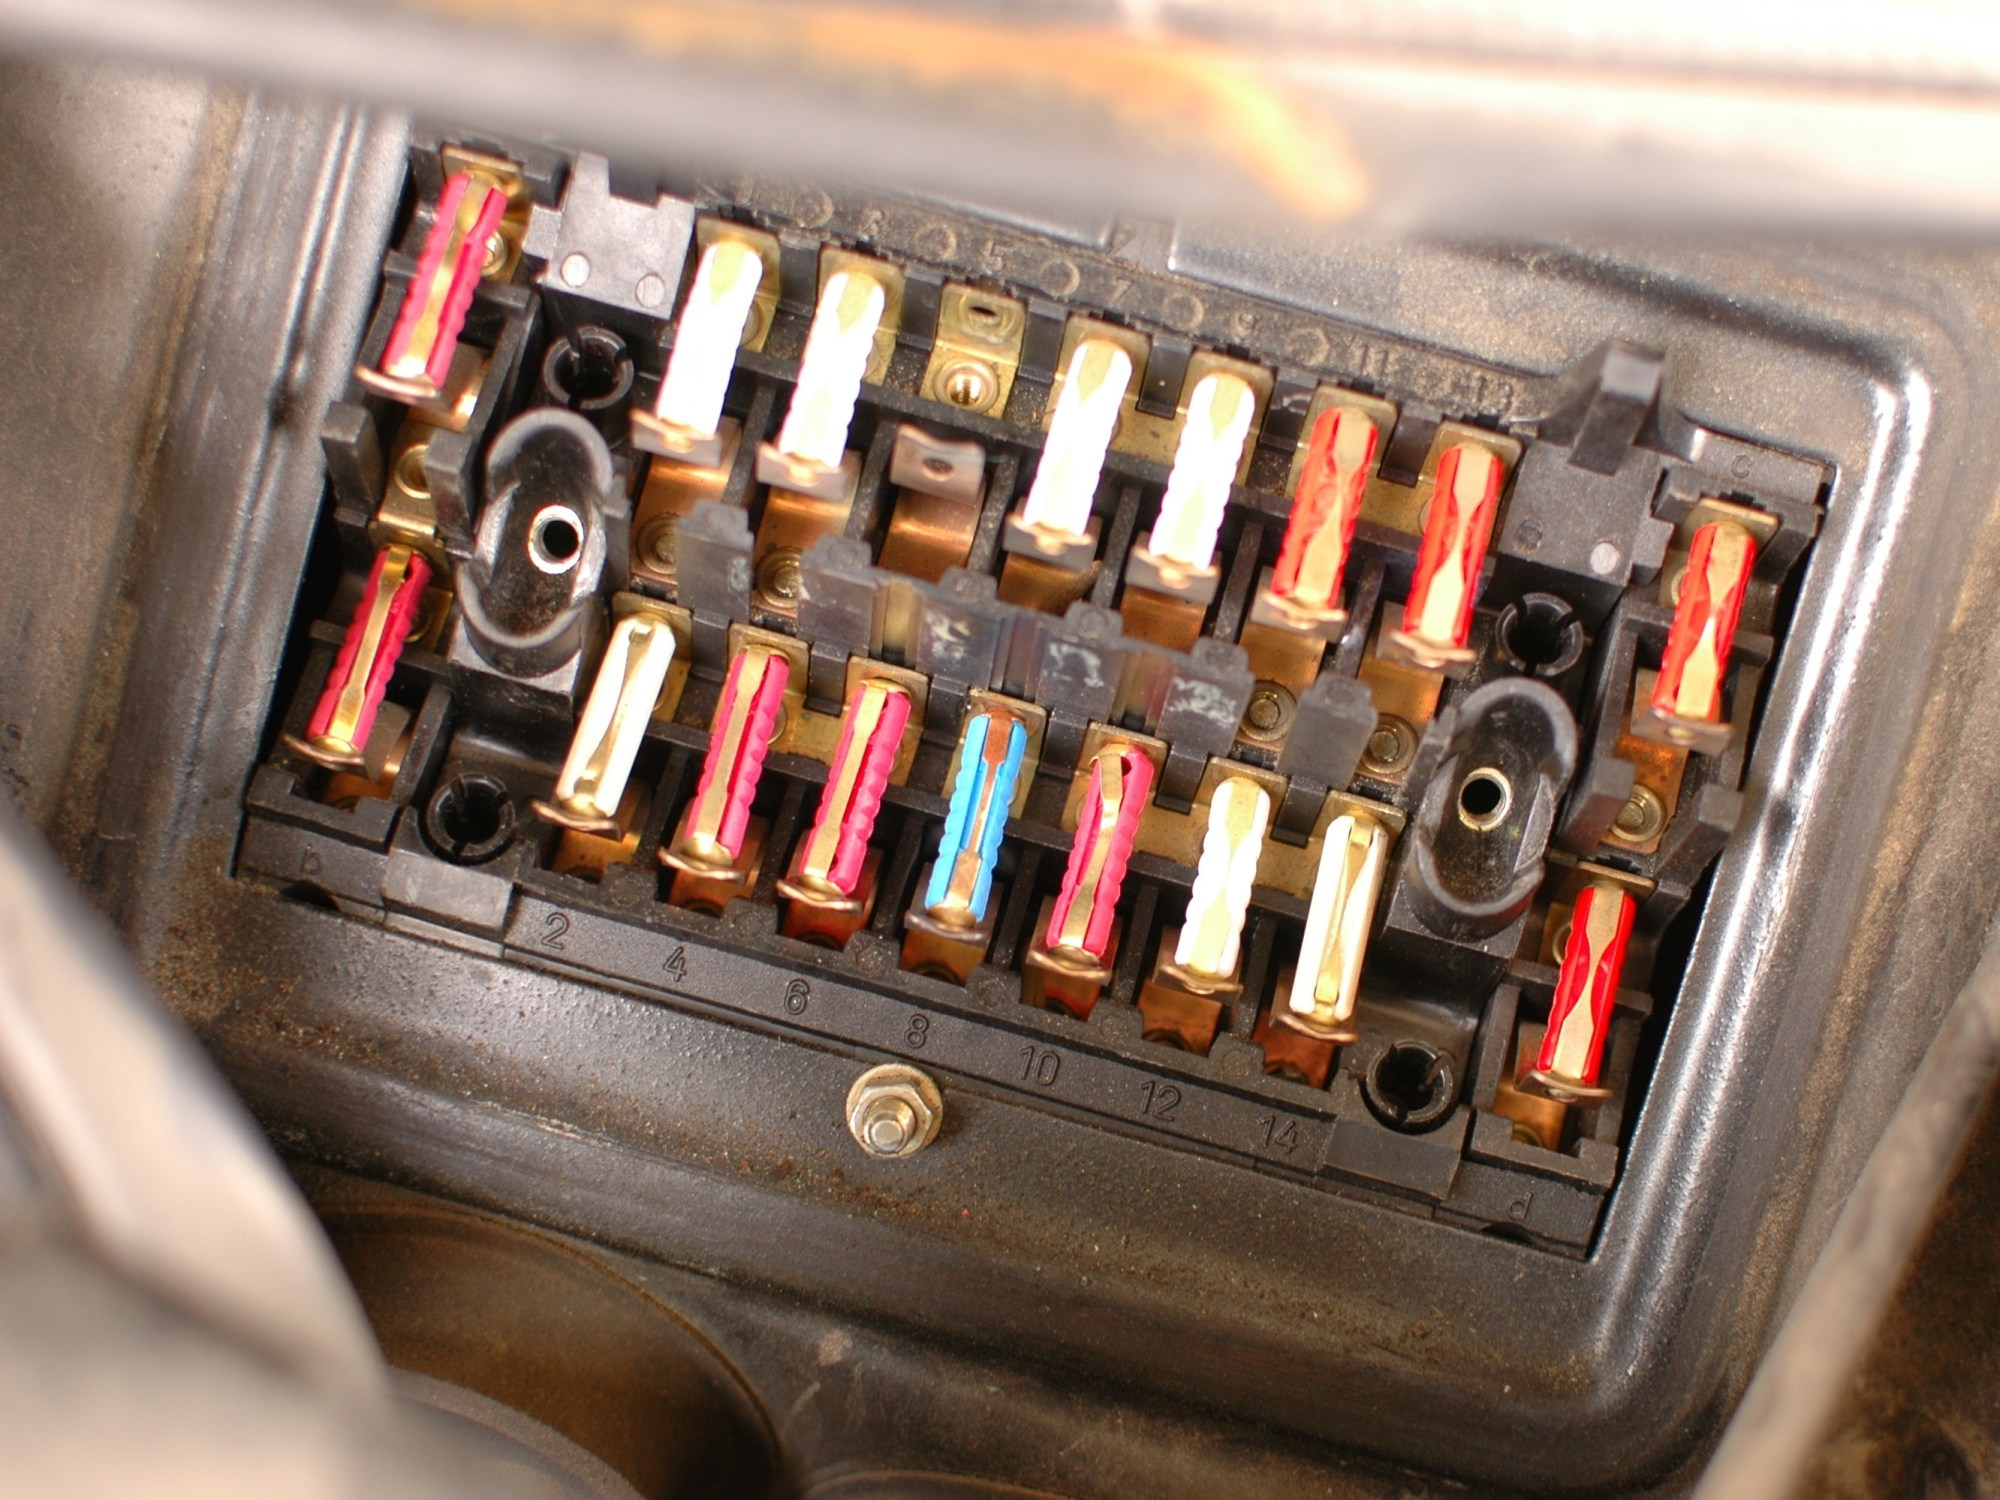 hight resolution of how to check mercedes w123 fuses ifixit repair guide rh ifixit com mercedes e320 fuse diagram mercedes benz w123 fuse box